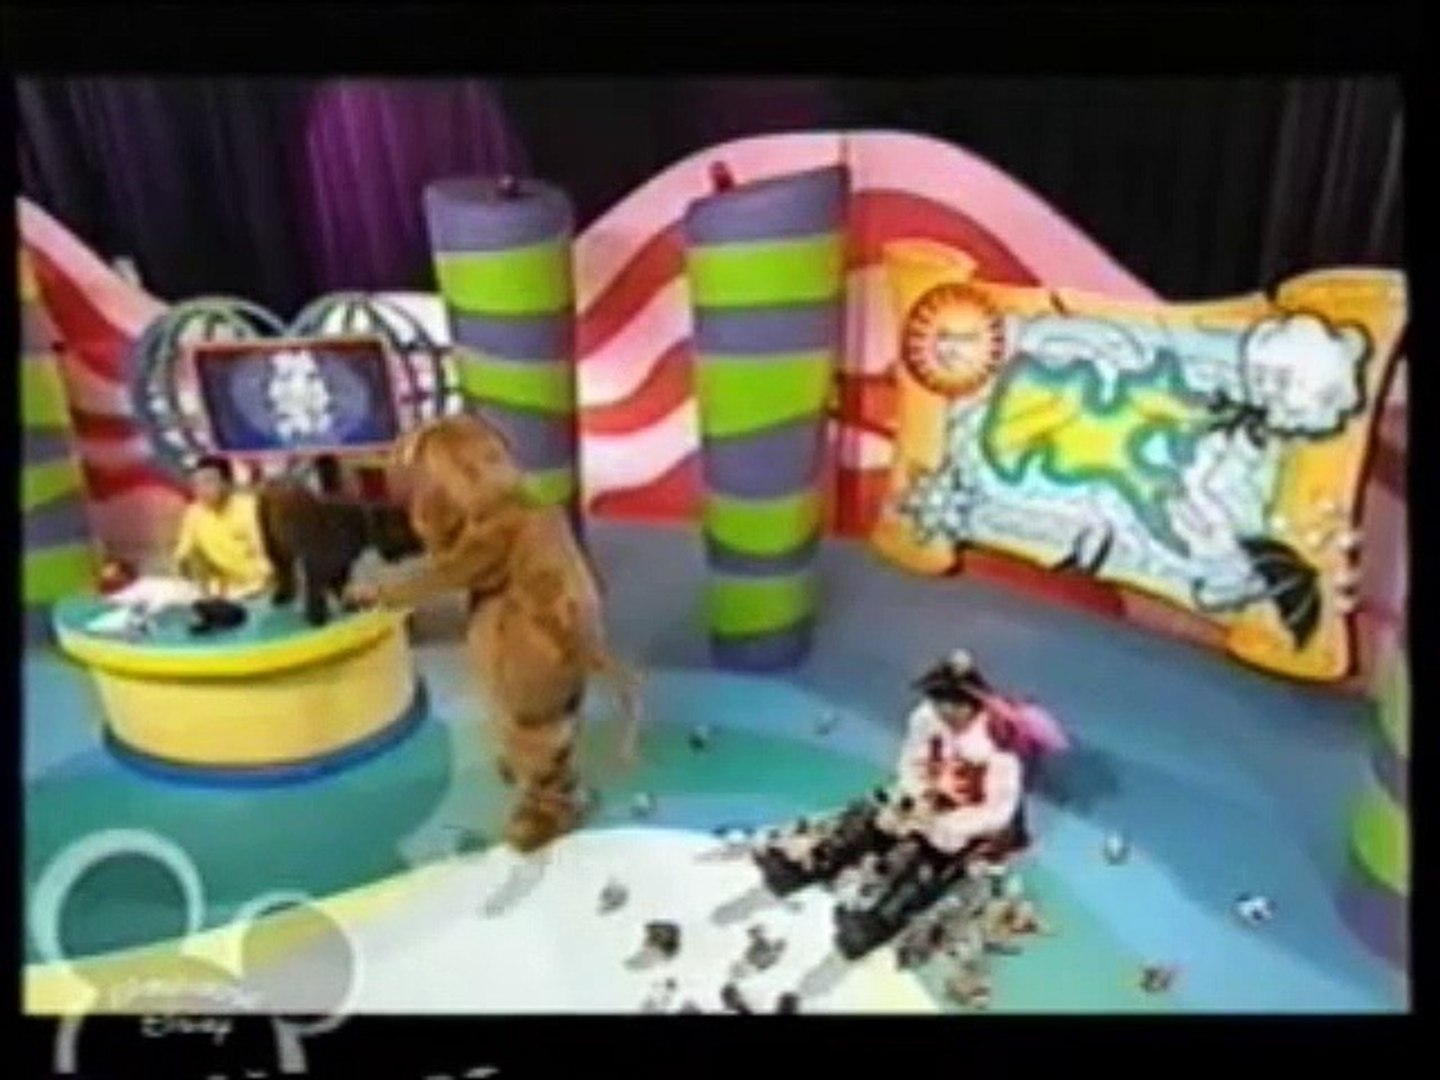 Shanna's Show & Lights, Camera, Action, Wiggles - Animals (Playhouse Disney  Airing from February 5, 2004)